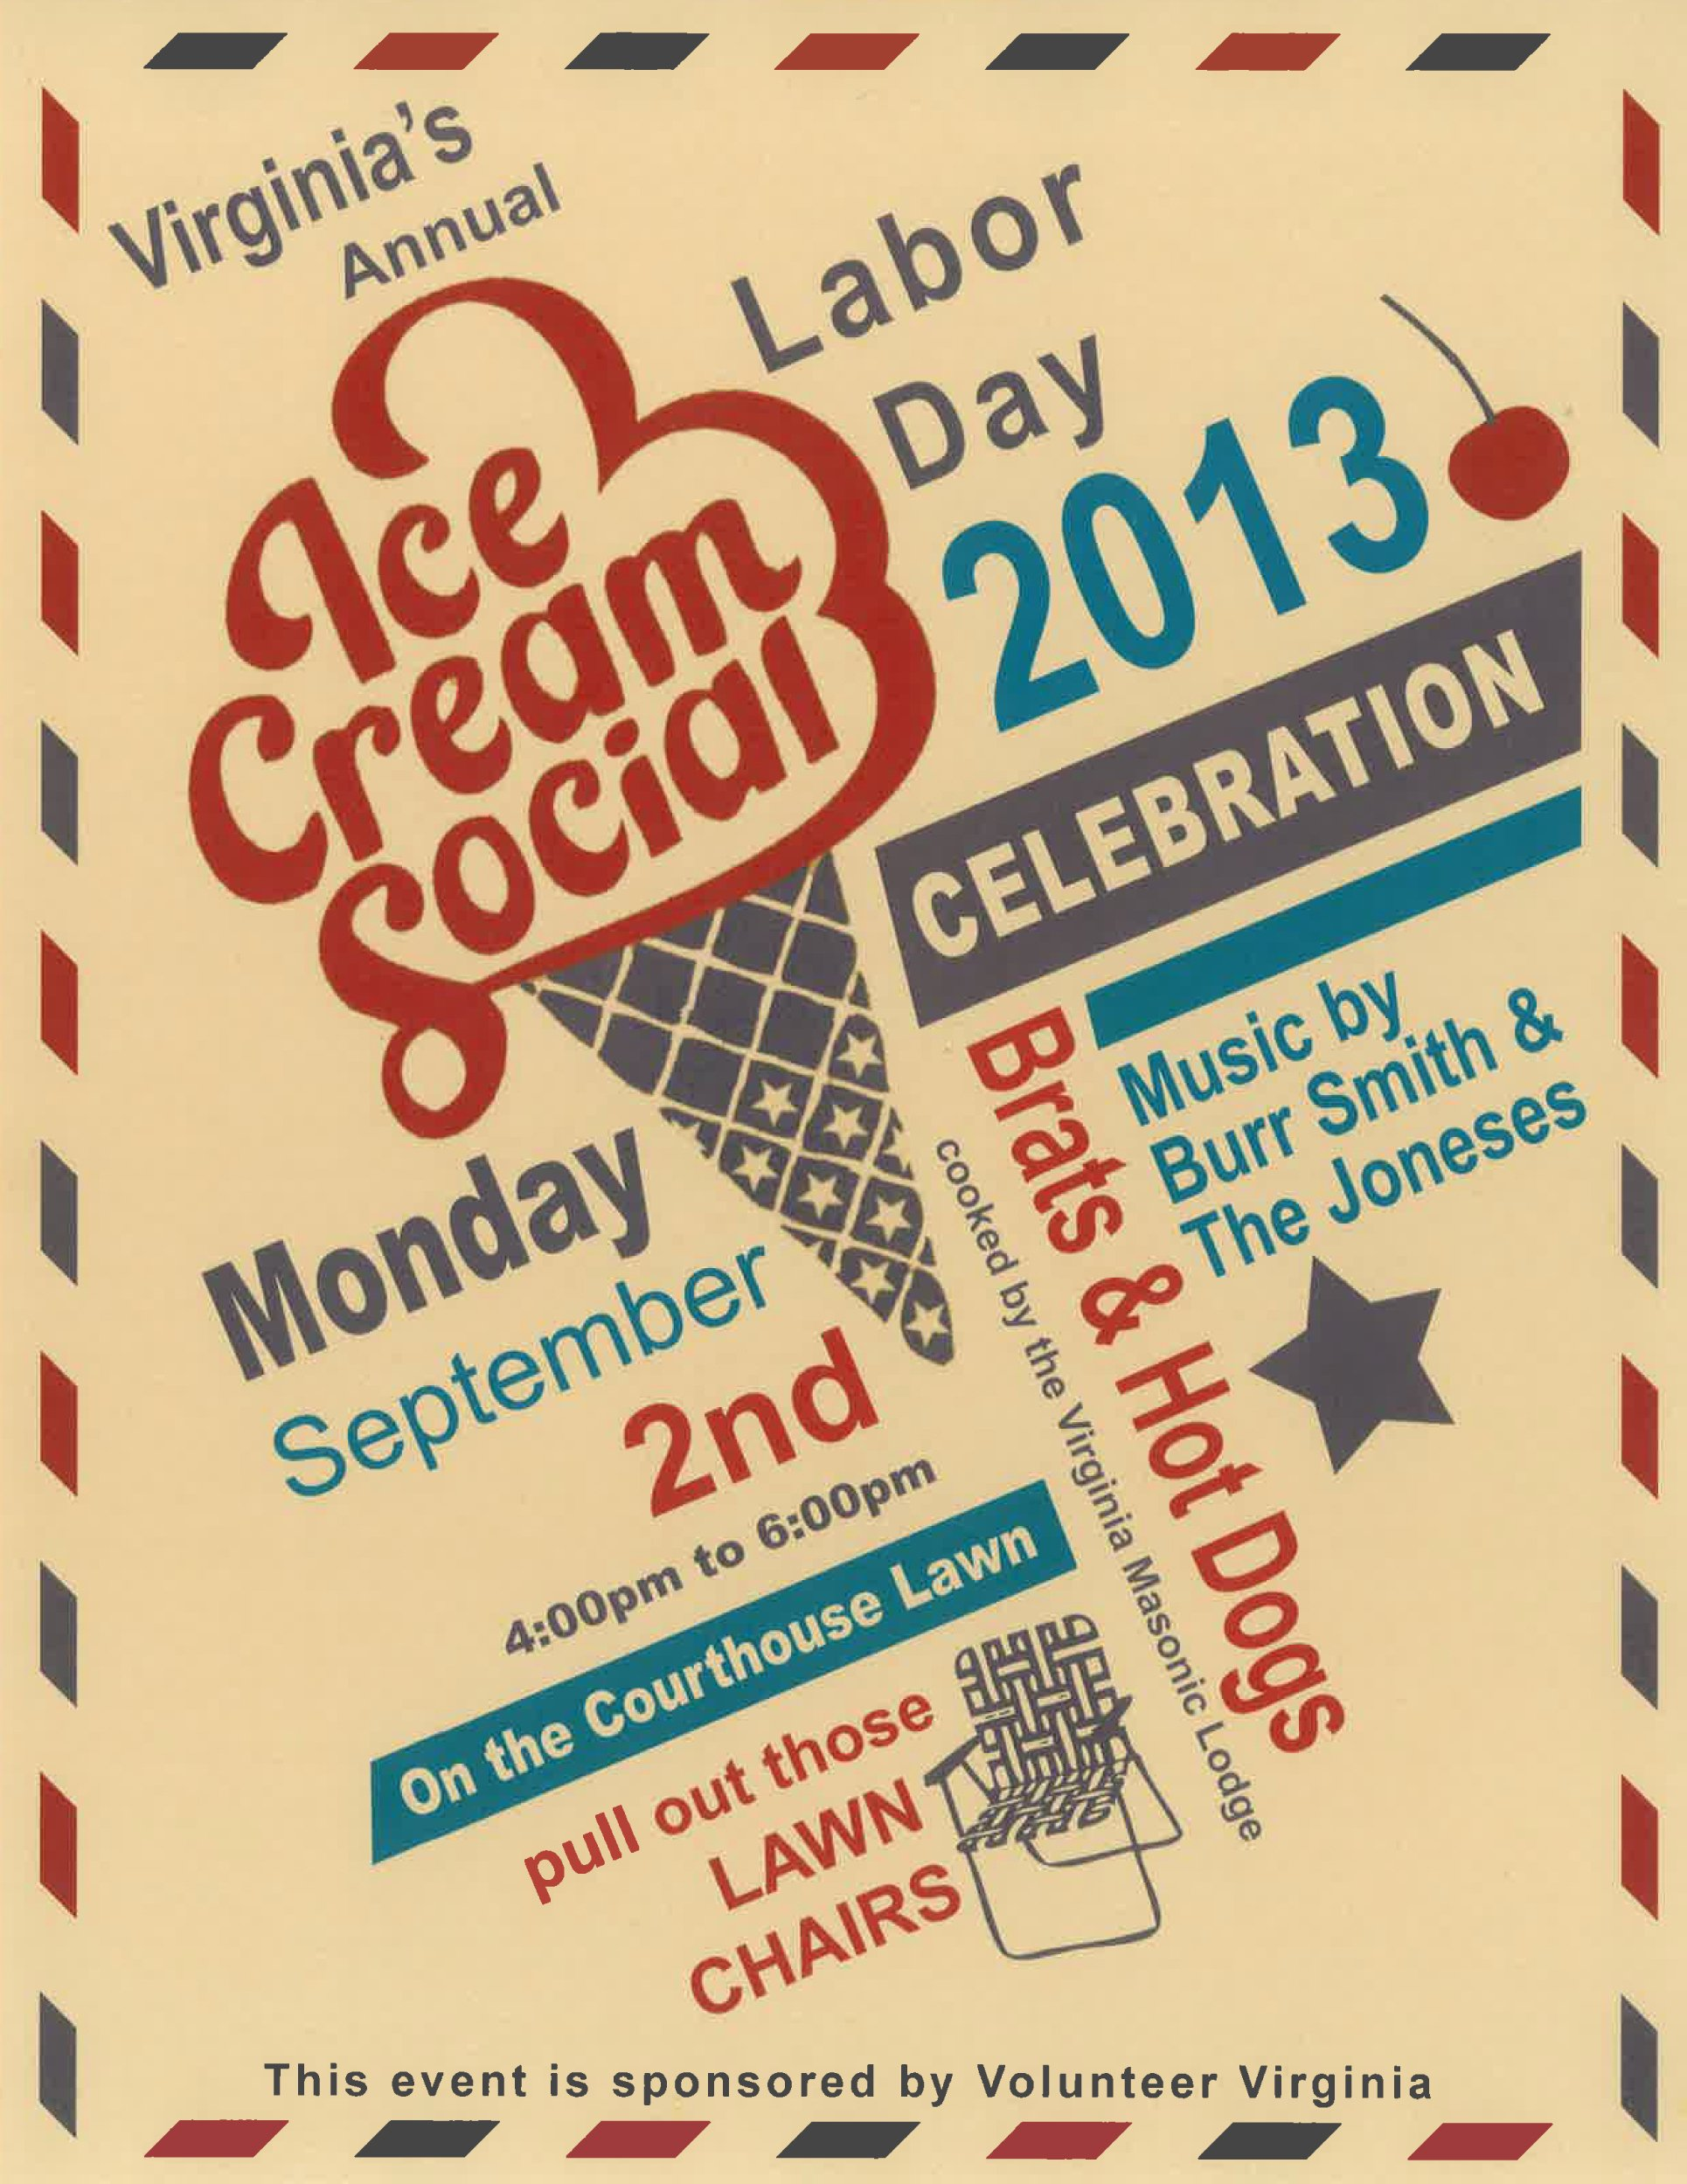 Ice Cream social Flyer Template New Labor Day 2013 Flyer